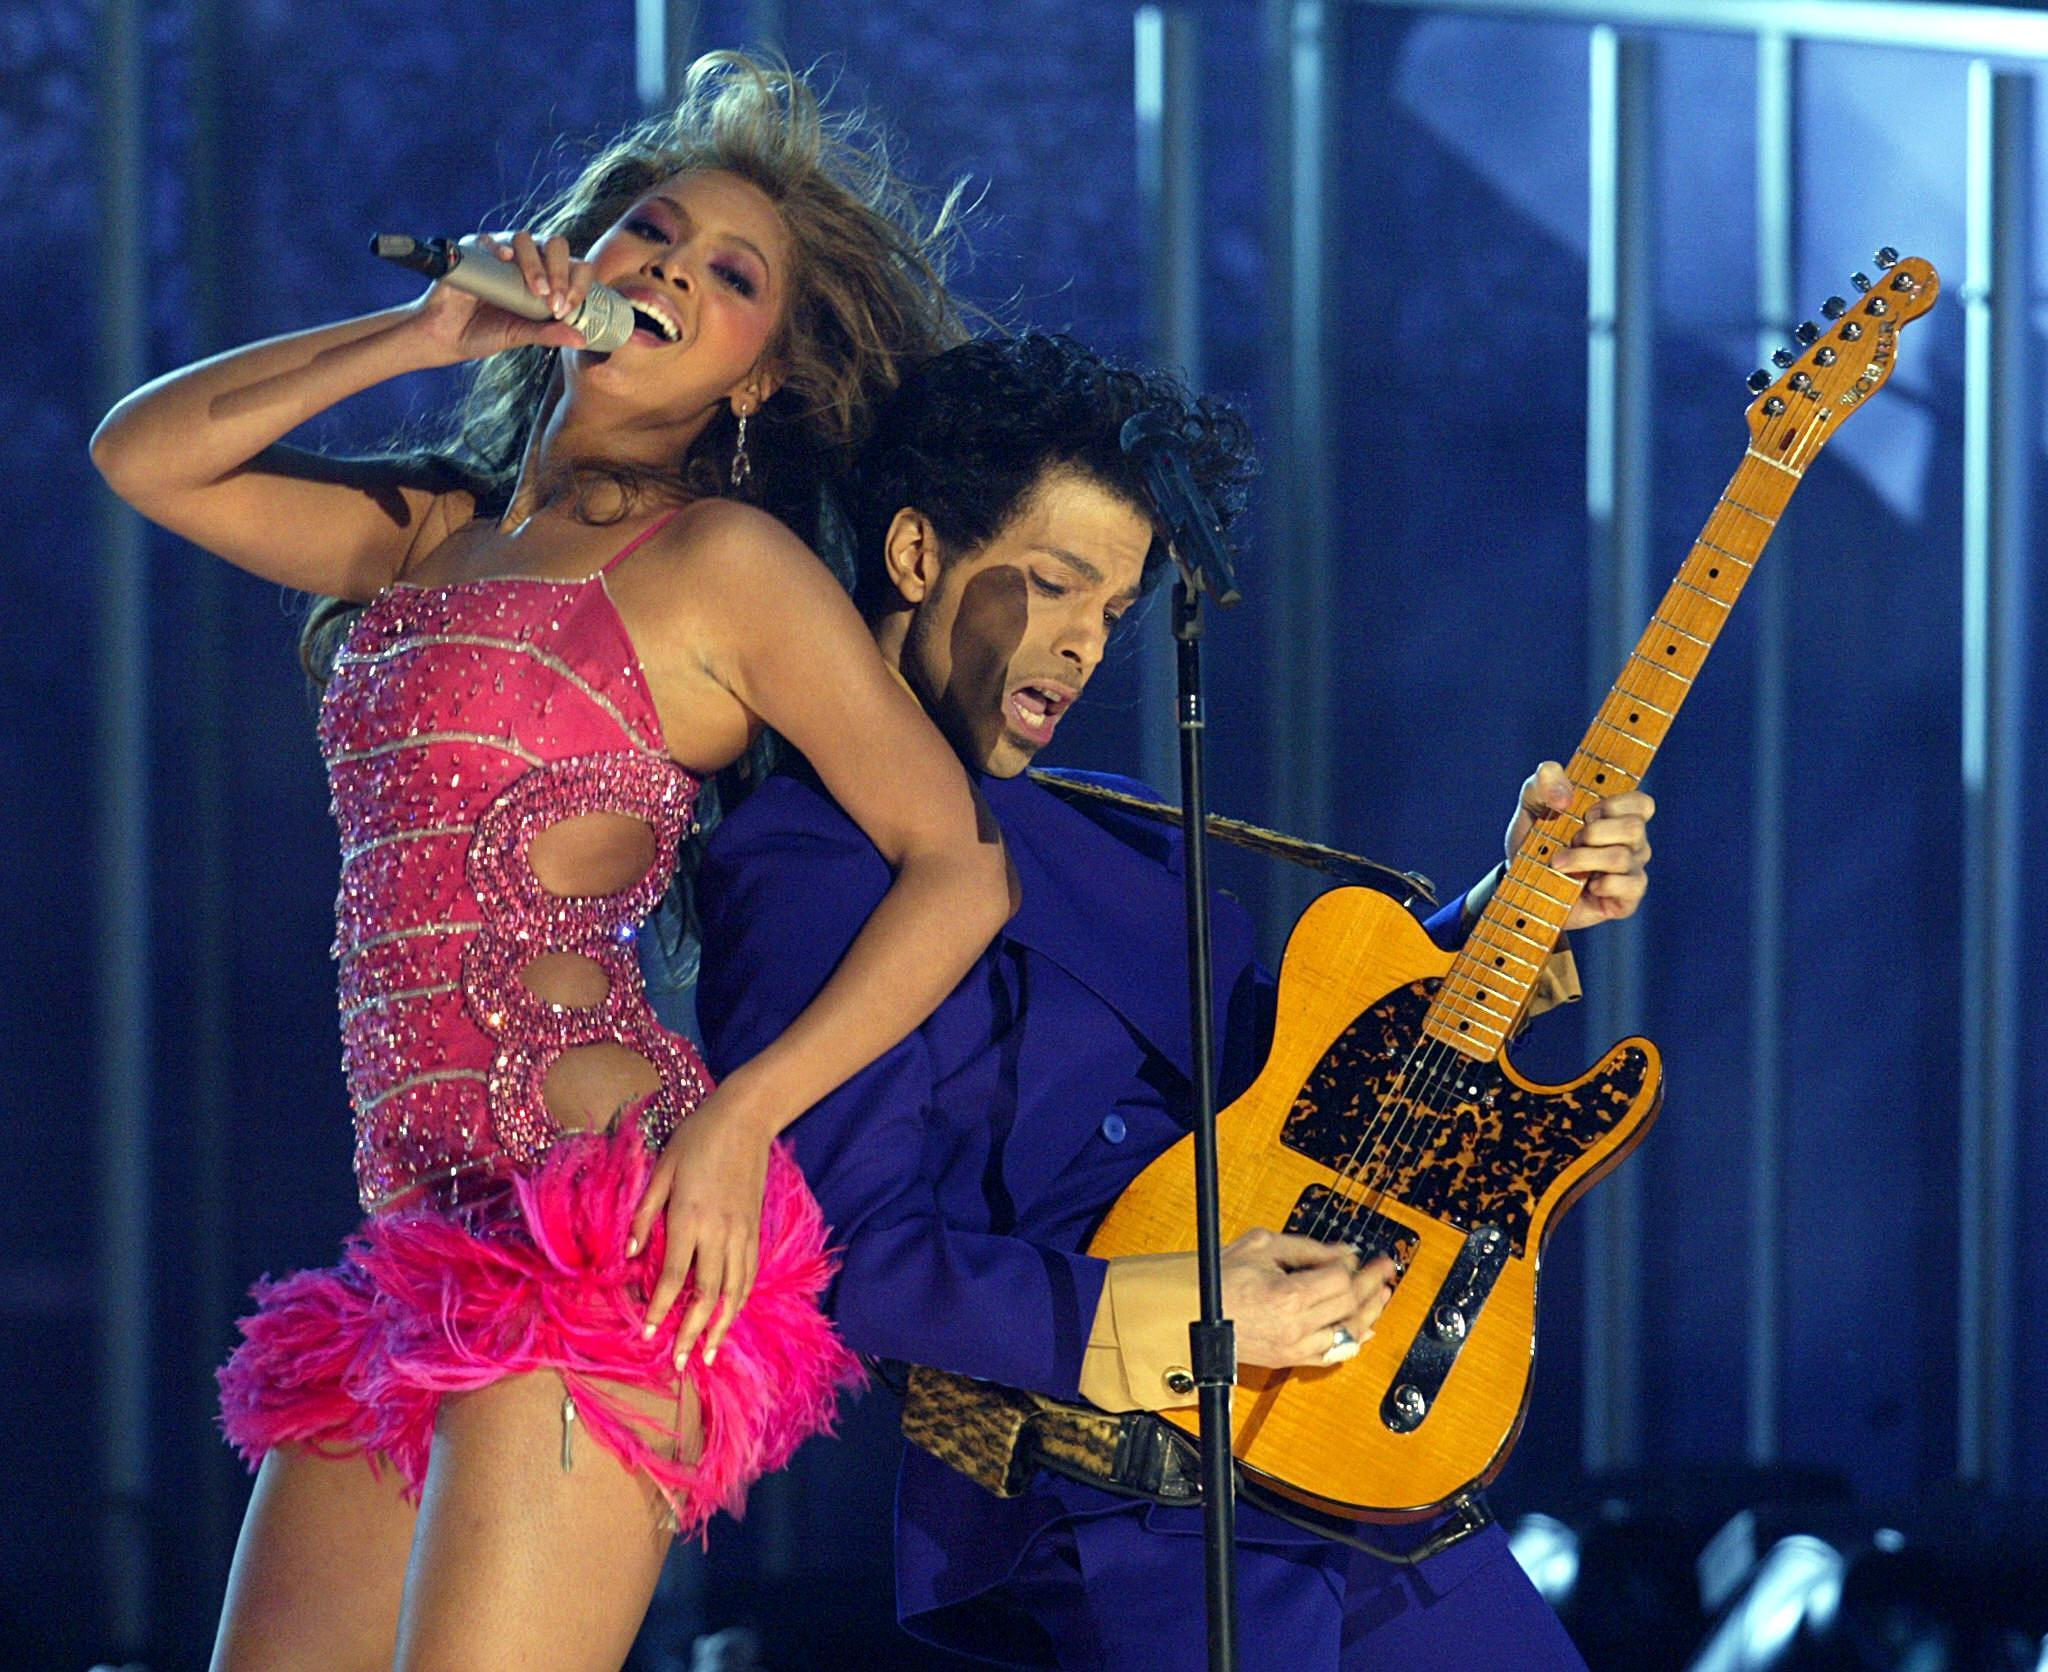 Beyoncé, left, and Prince perform together at the Grammy Awards in 2004. Bey penned the foreword to a new book of photographs of the late pop superstar. (Timothy A. Clary / AFP/Getty Images)